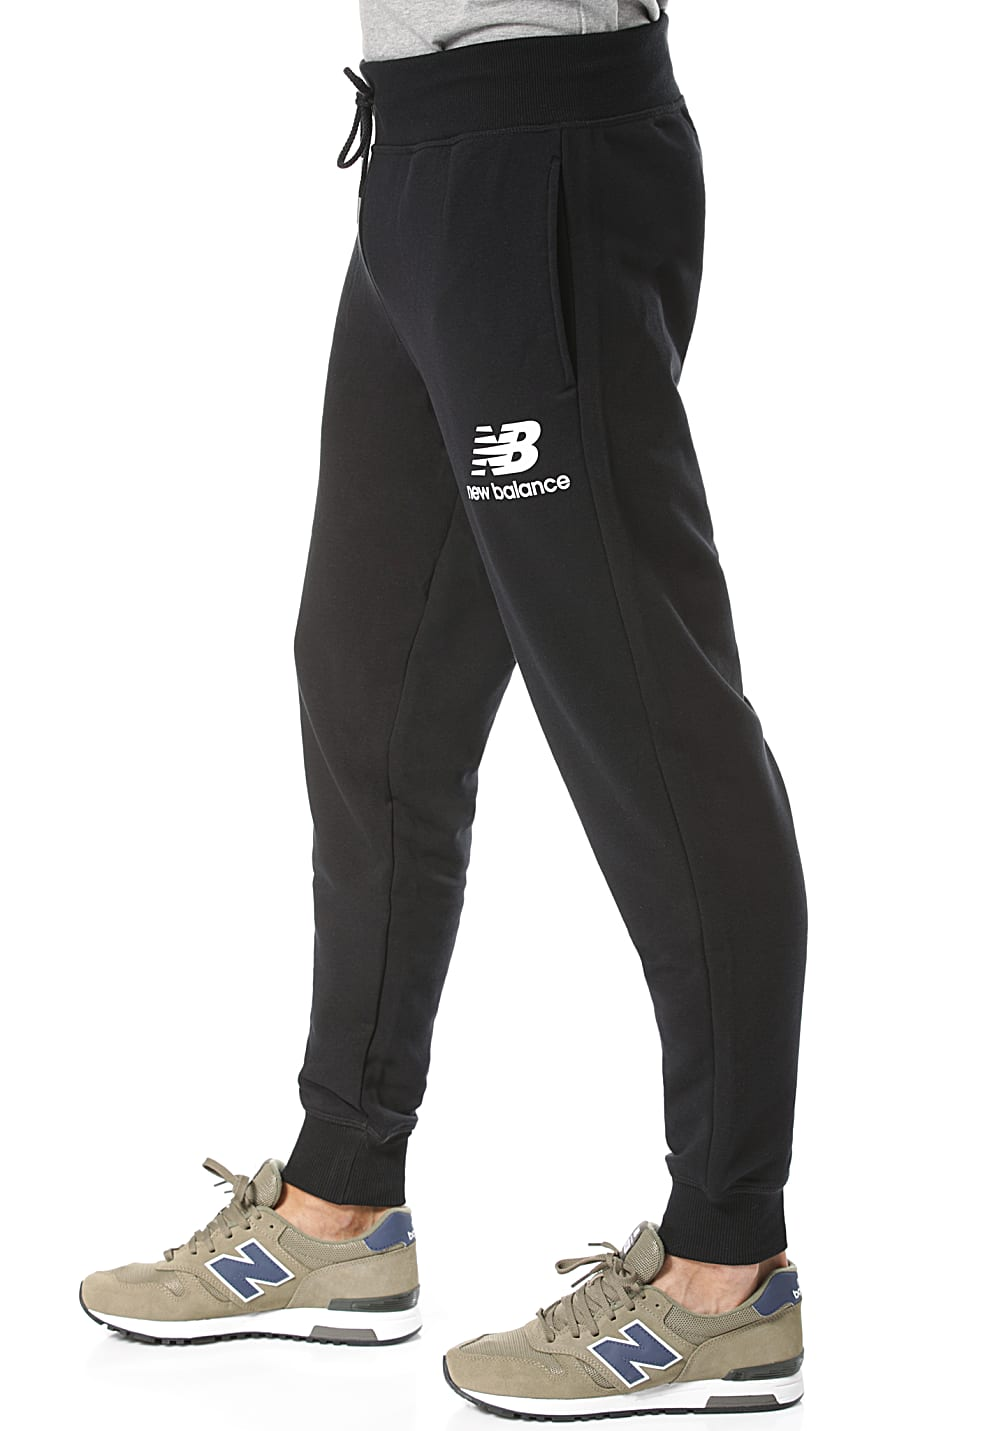 254fdfc3 NEW BALANCE MP91550 - Trackpants for Men - Black